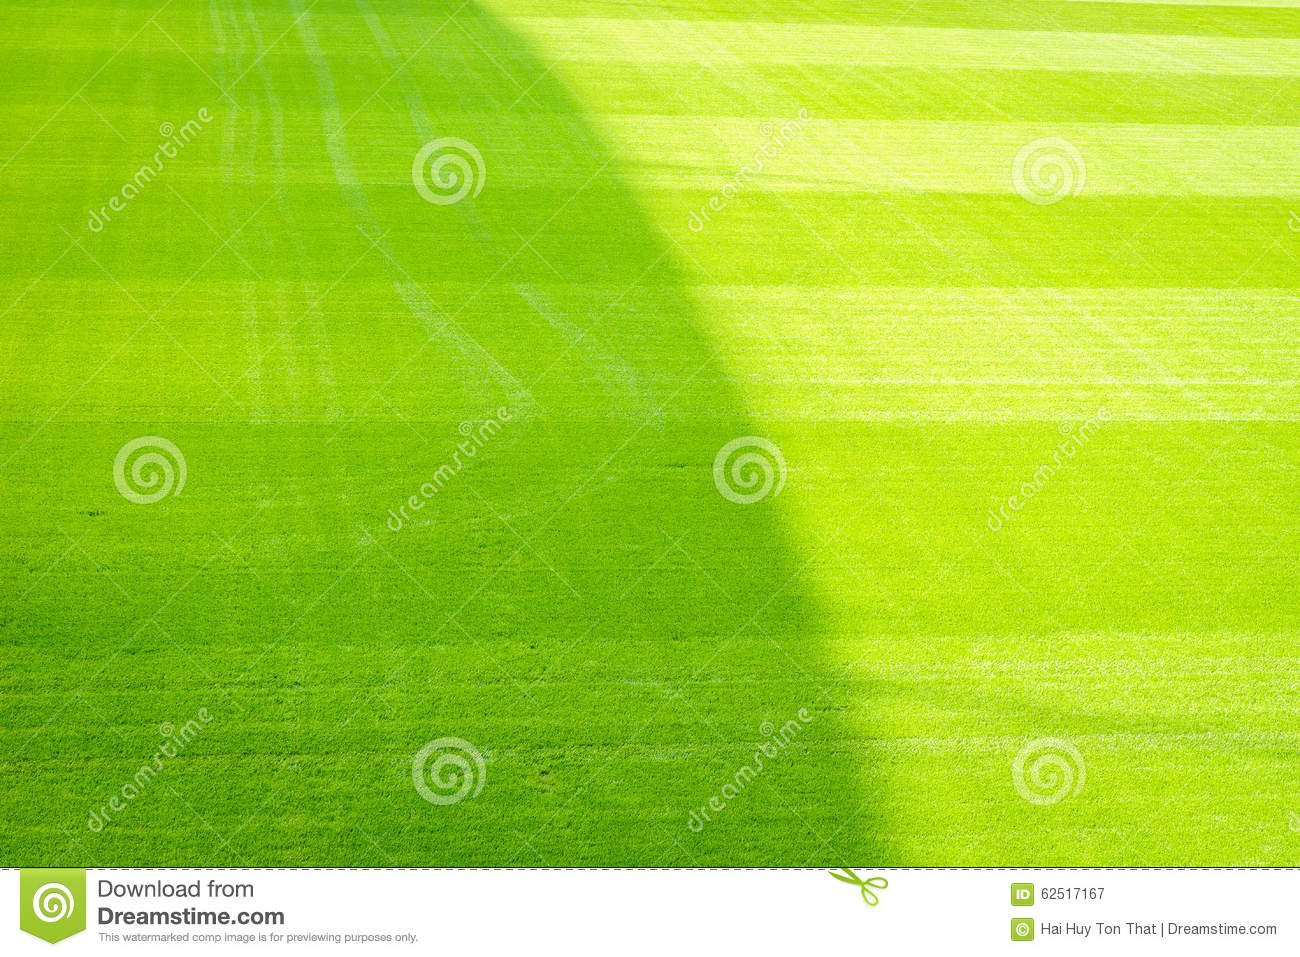 football field background stock photo image 62517167